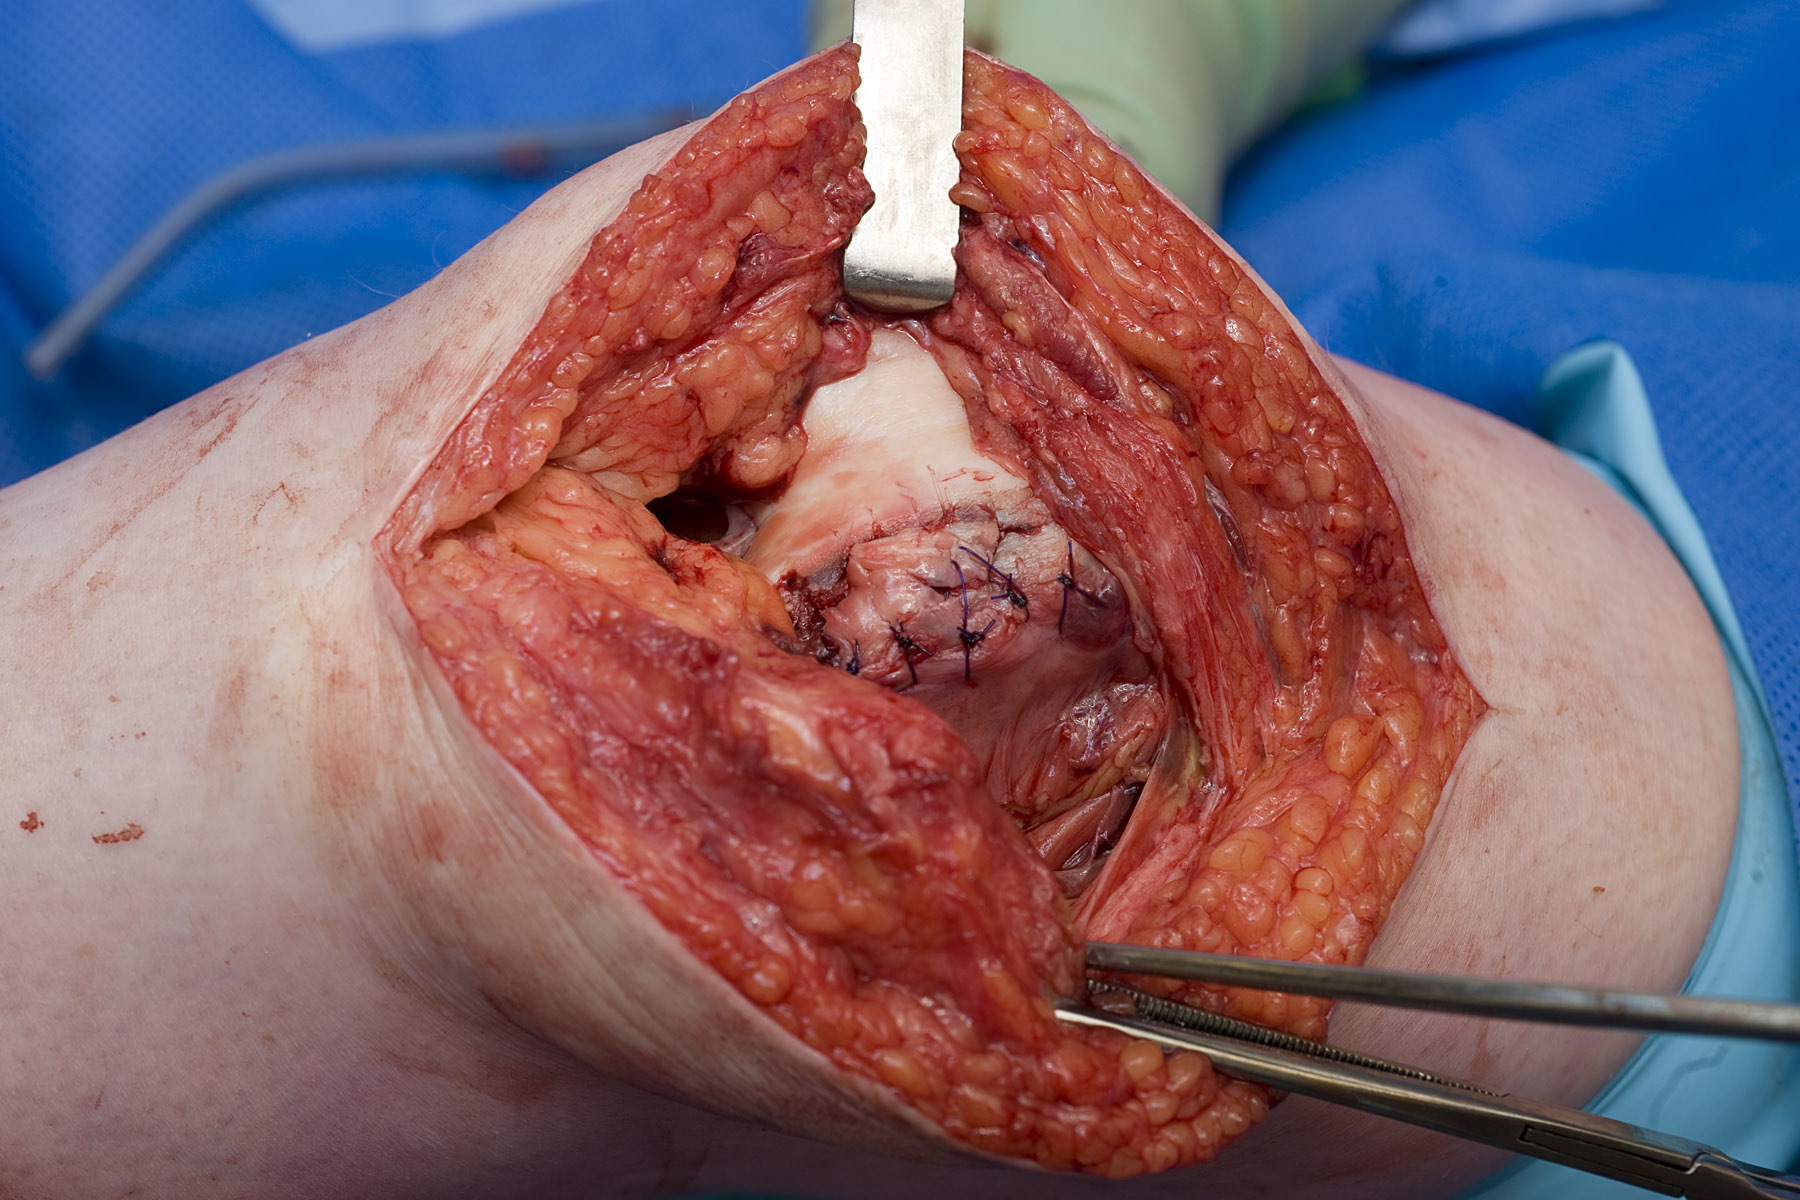 Patellar Fracture Fixation An Unreported Complication Occurring Jaw Wiring Surgery Figure 4 The Osteochondral Defect Stabilized With Interrupted 3 0 Pds Sutures Achieving A Smooth Articular Surface